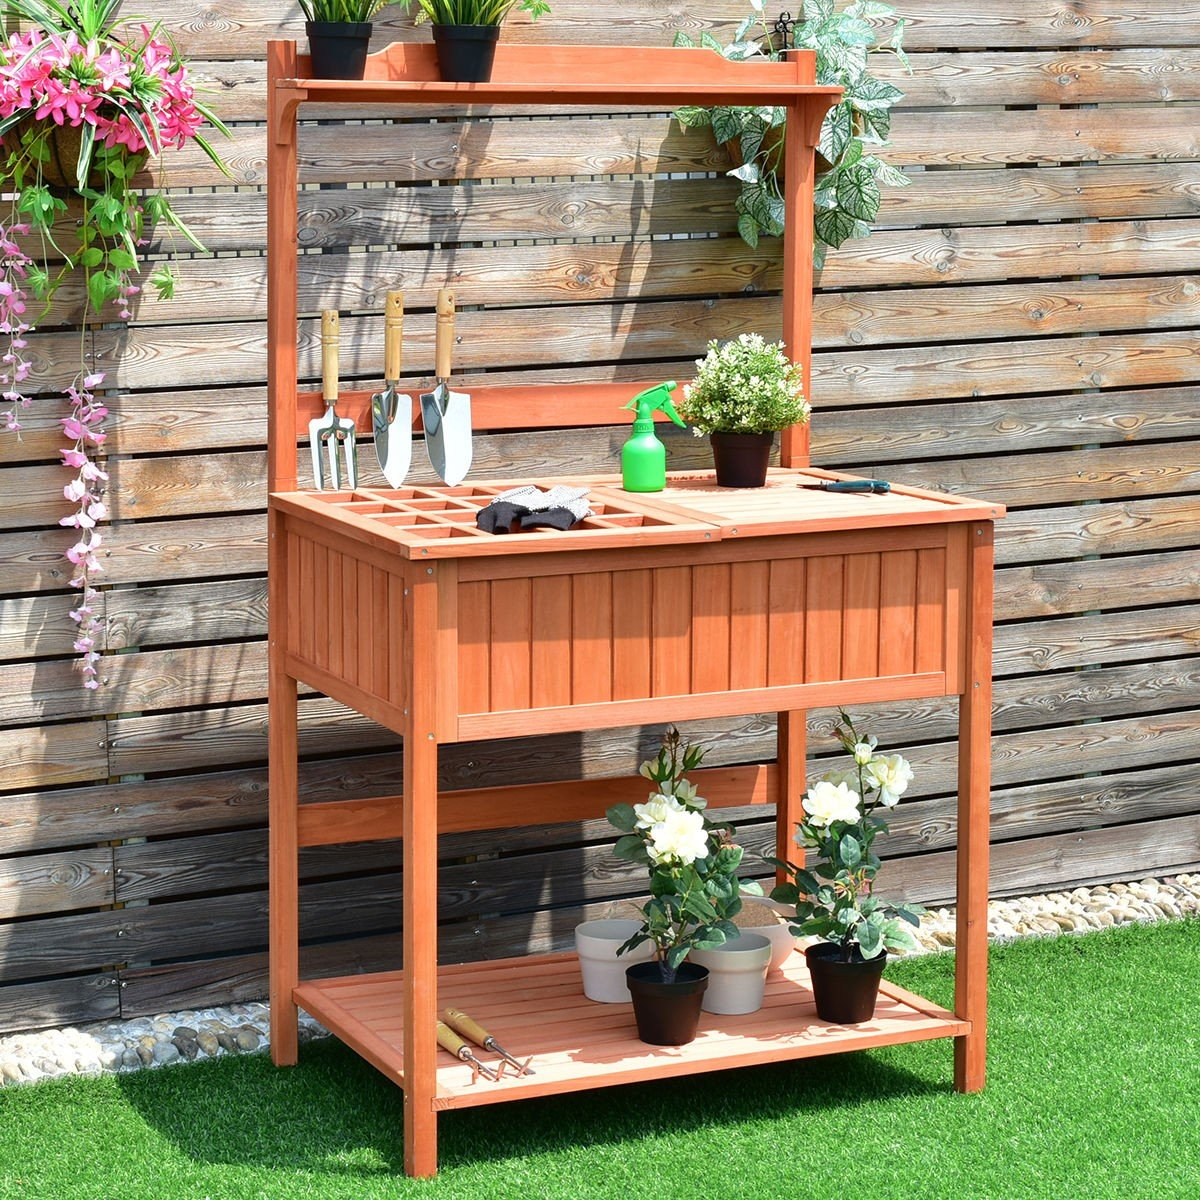 Outdoor Wooden Planting Potting Workstation Table - By Choice Products